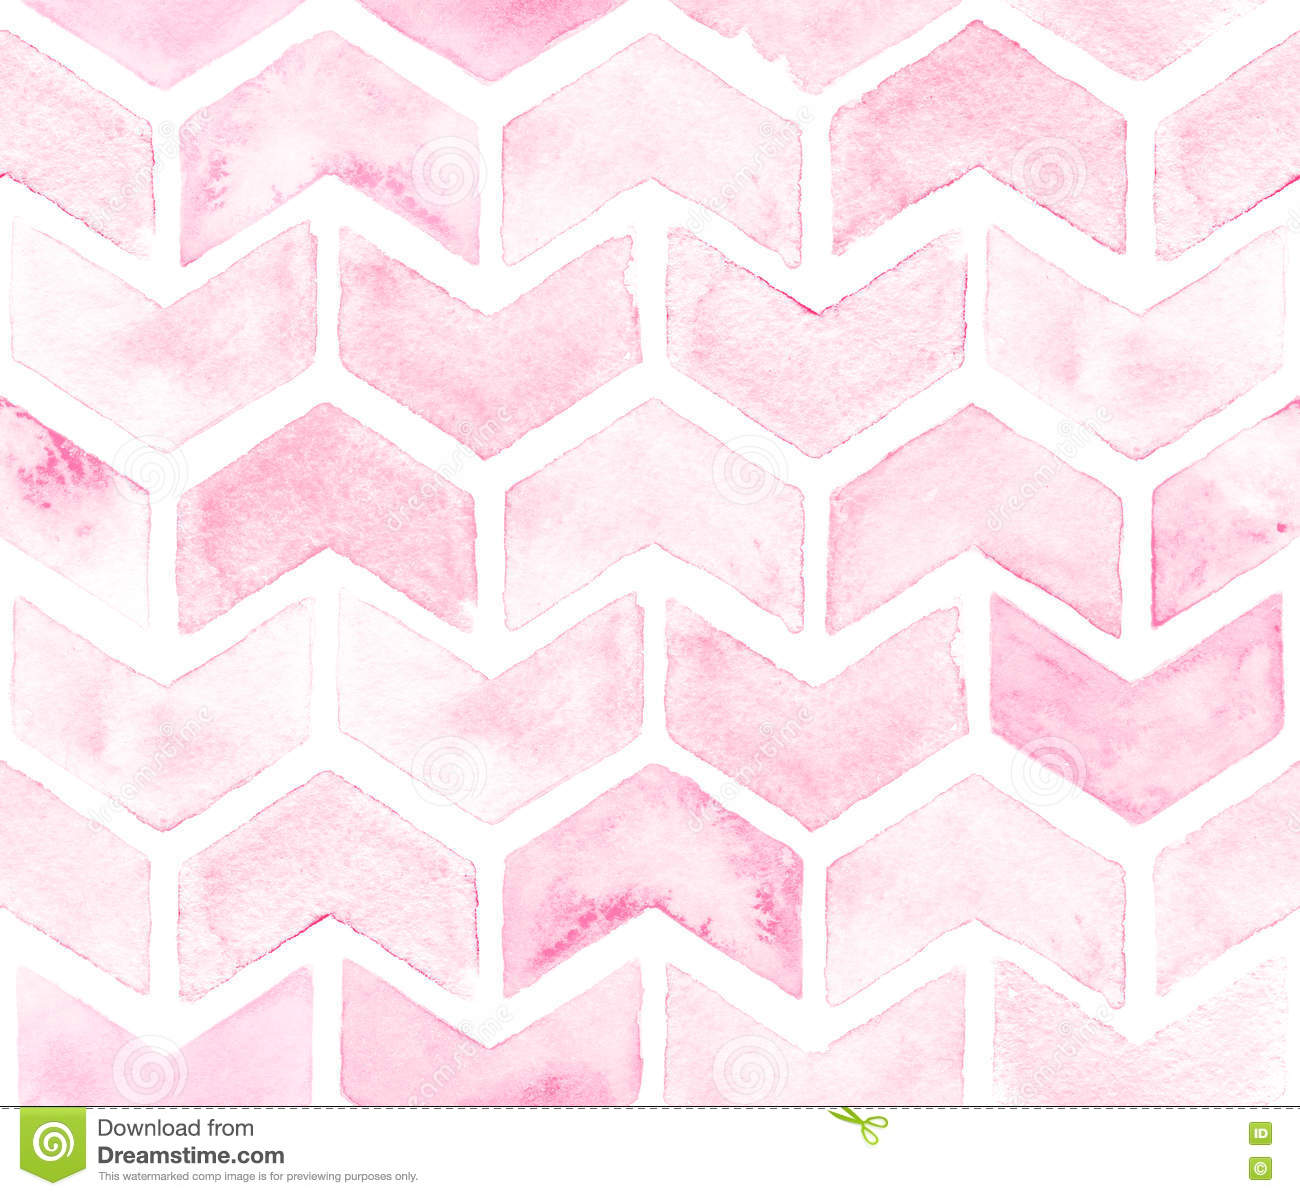 Chevron of light pink color on white background. Watercolor seamless pattern for fabric